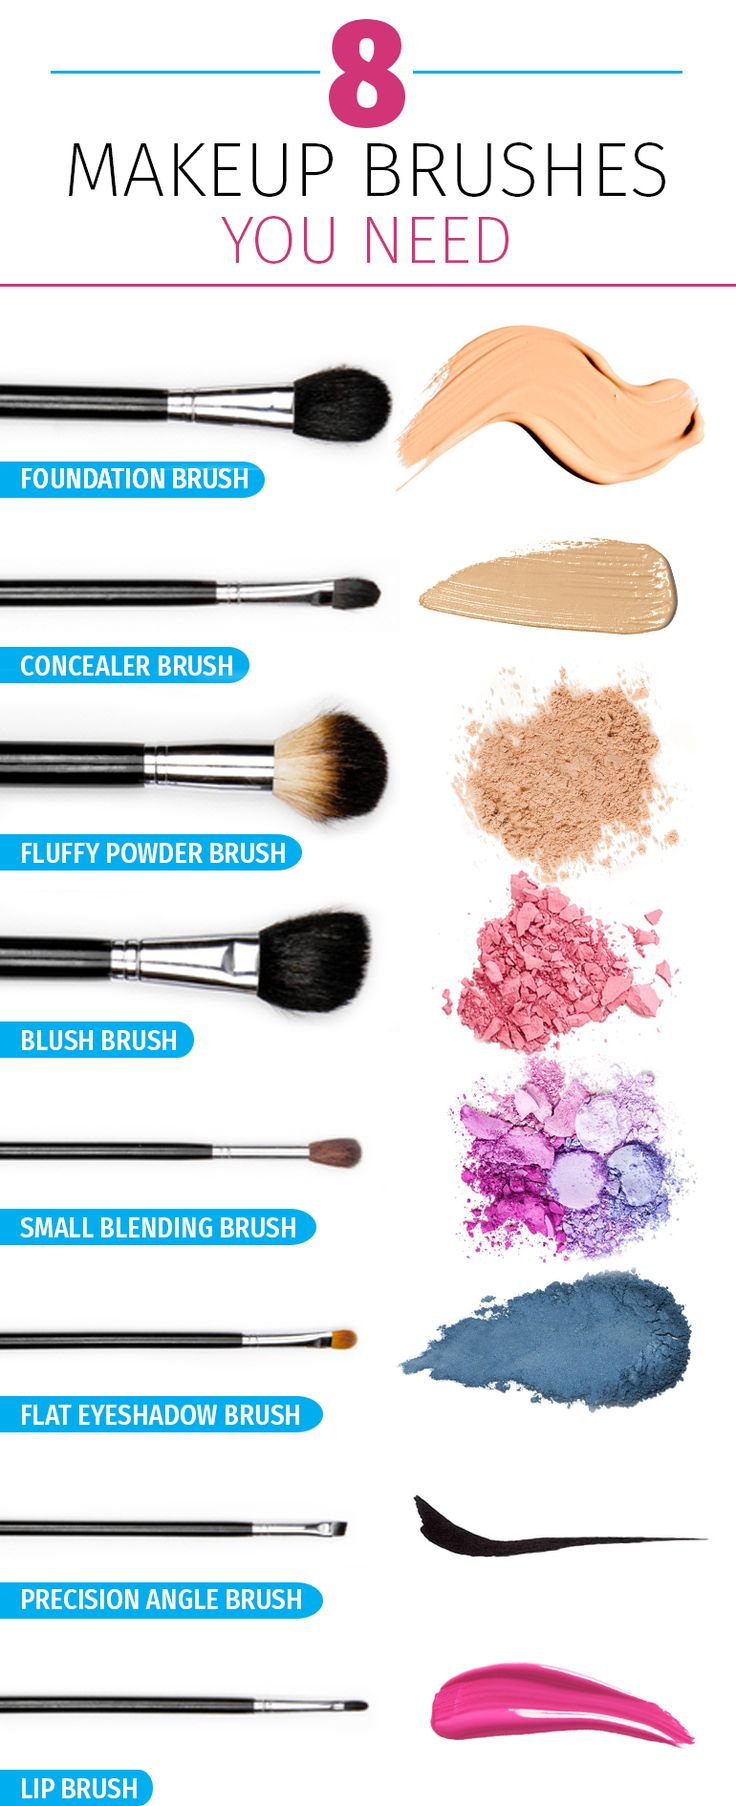 This makeup brushes guide will make sure you have everything you need for your beauty routine. It breaks them down by name and purpose, making it easy to find the best one for your eye shadow, blush or foundation. Beauty & Personal Care : http://amzn.to/2irNRWU